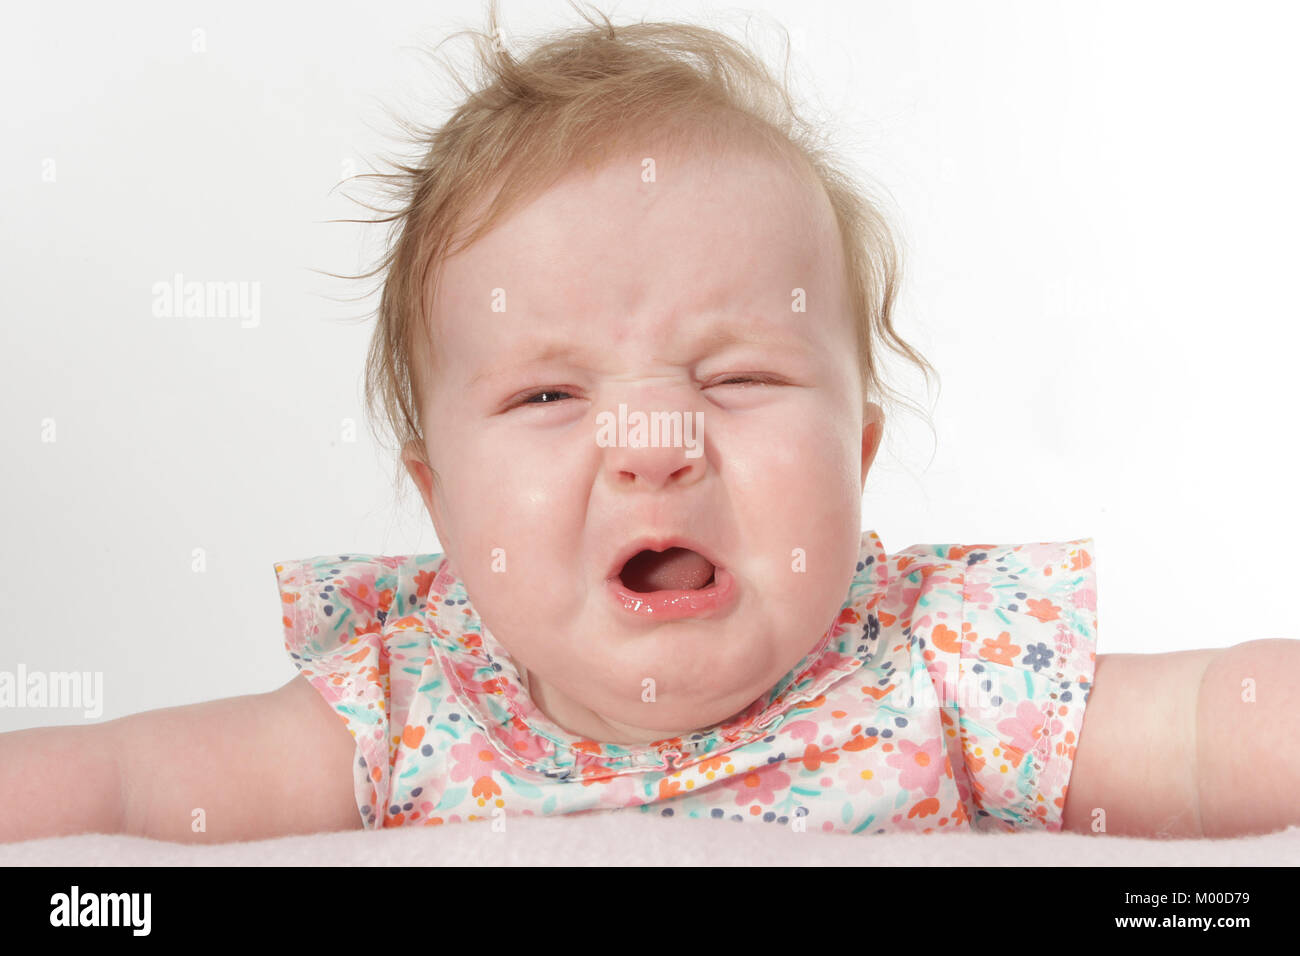 childhood, bad behaviour, temper tantrums, postnatal depression - Stock Image